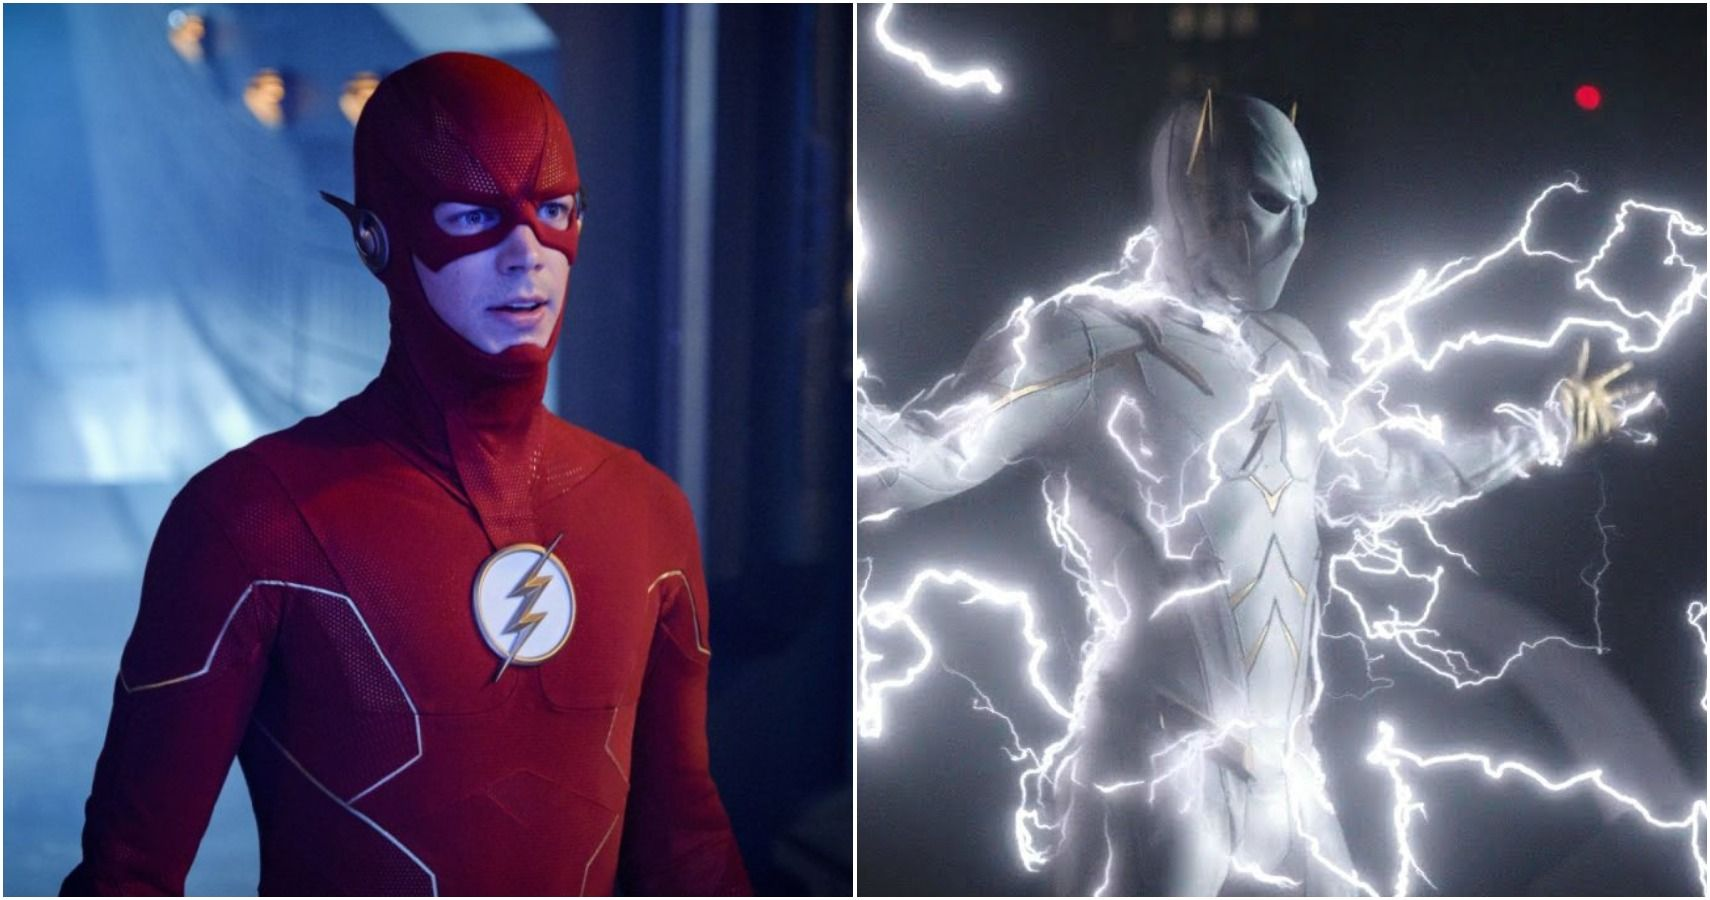 The Flash 10 Villains Who Could Be Behind The Godspeed Clones